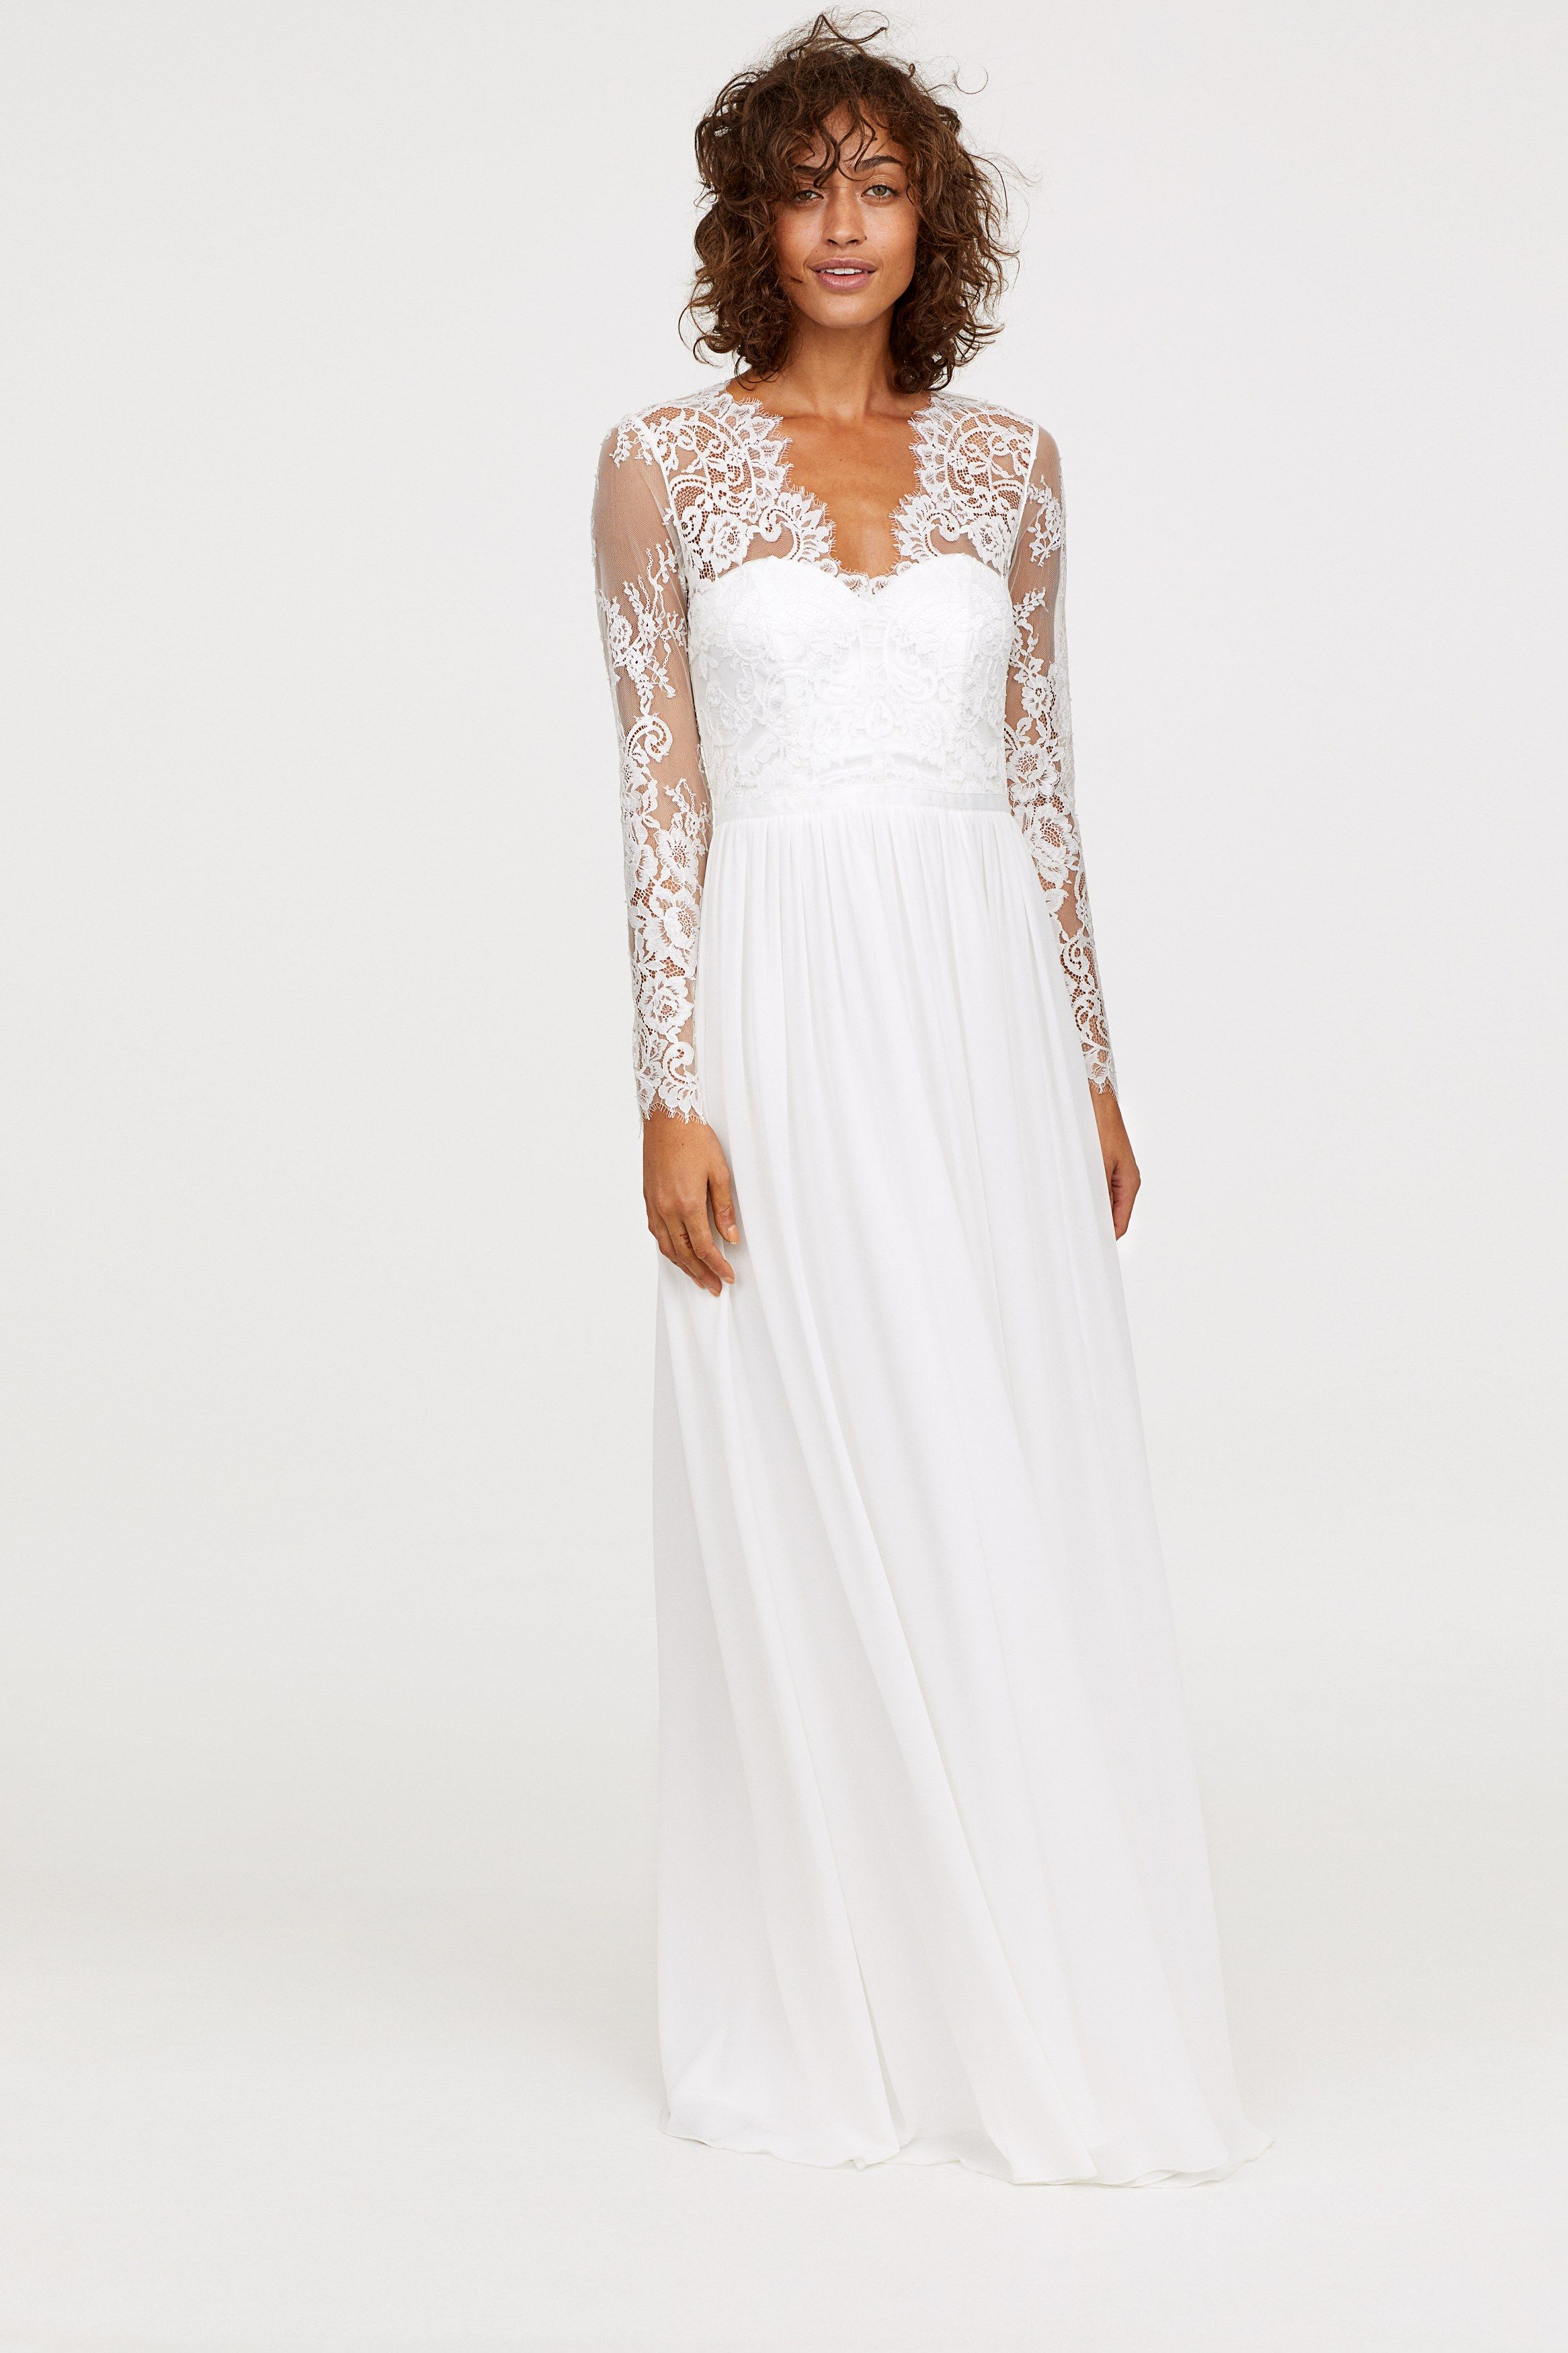 97b915c8b842b48 H&M Bridal Shop Is Officially Here | Brides | Масс-маркет ...